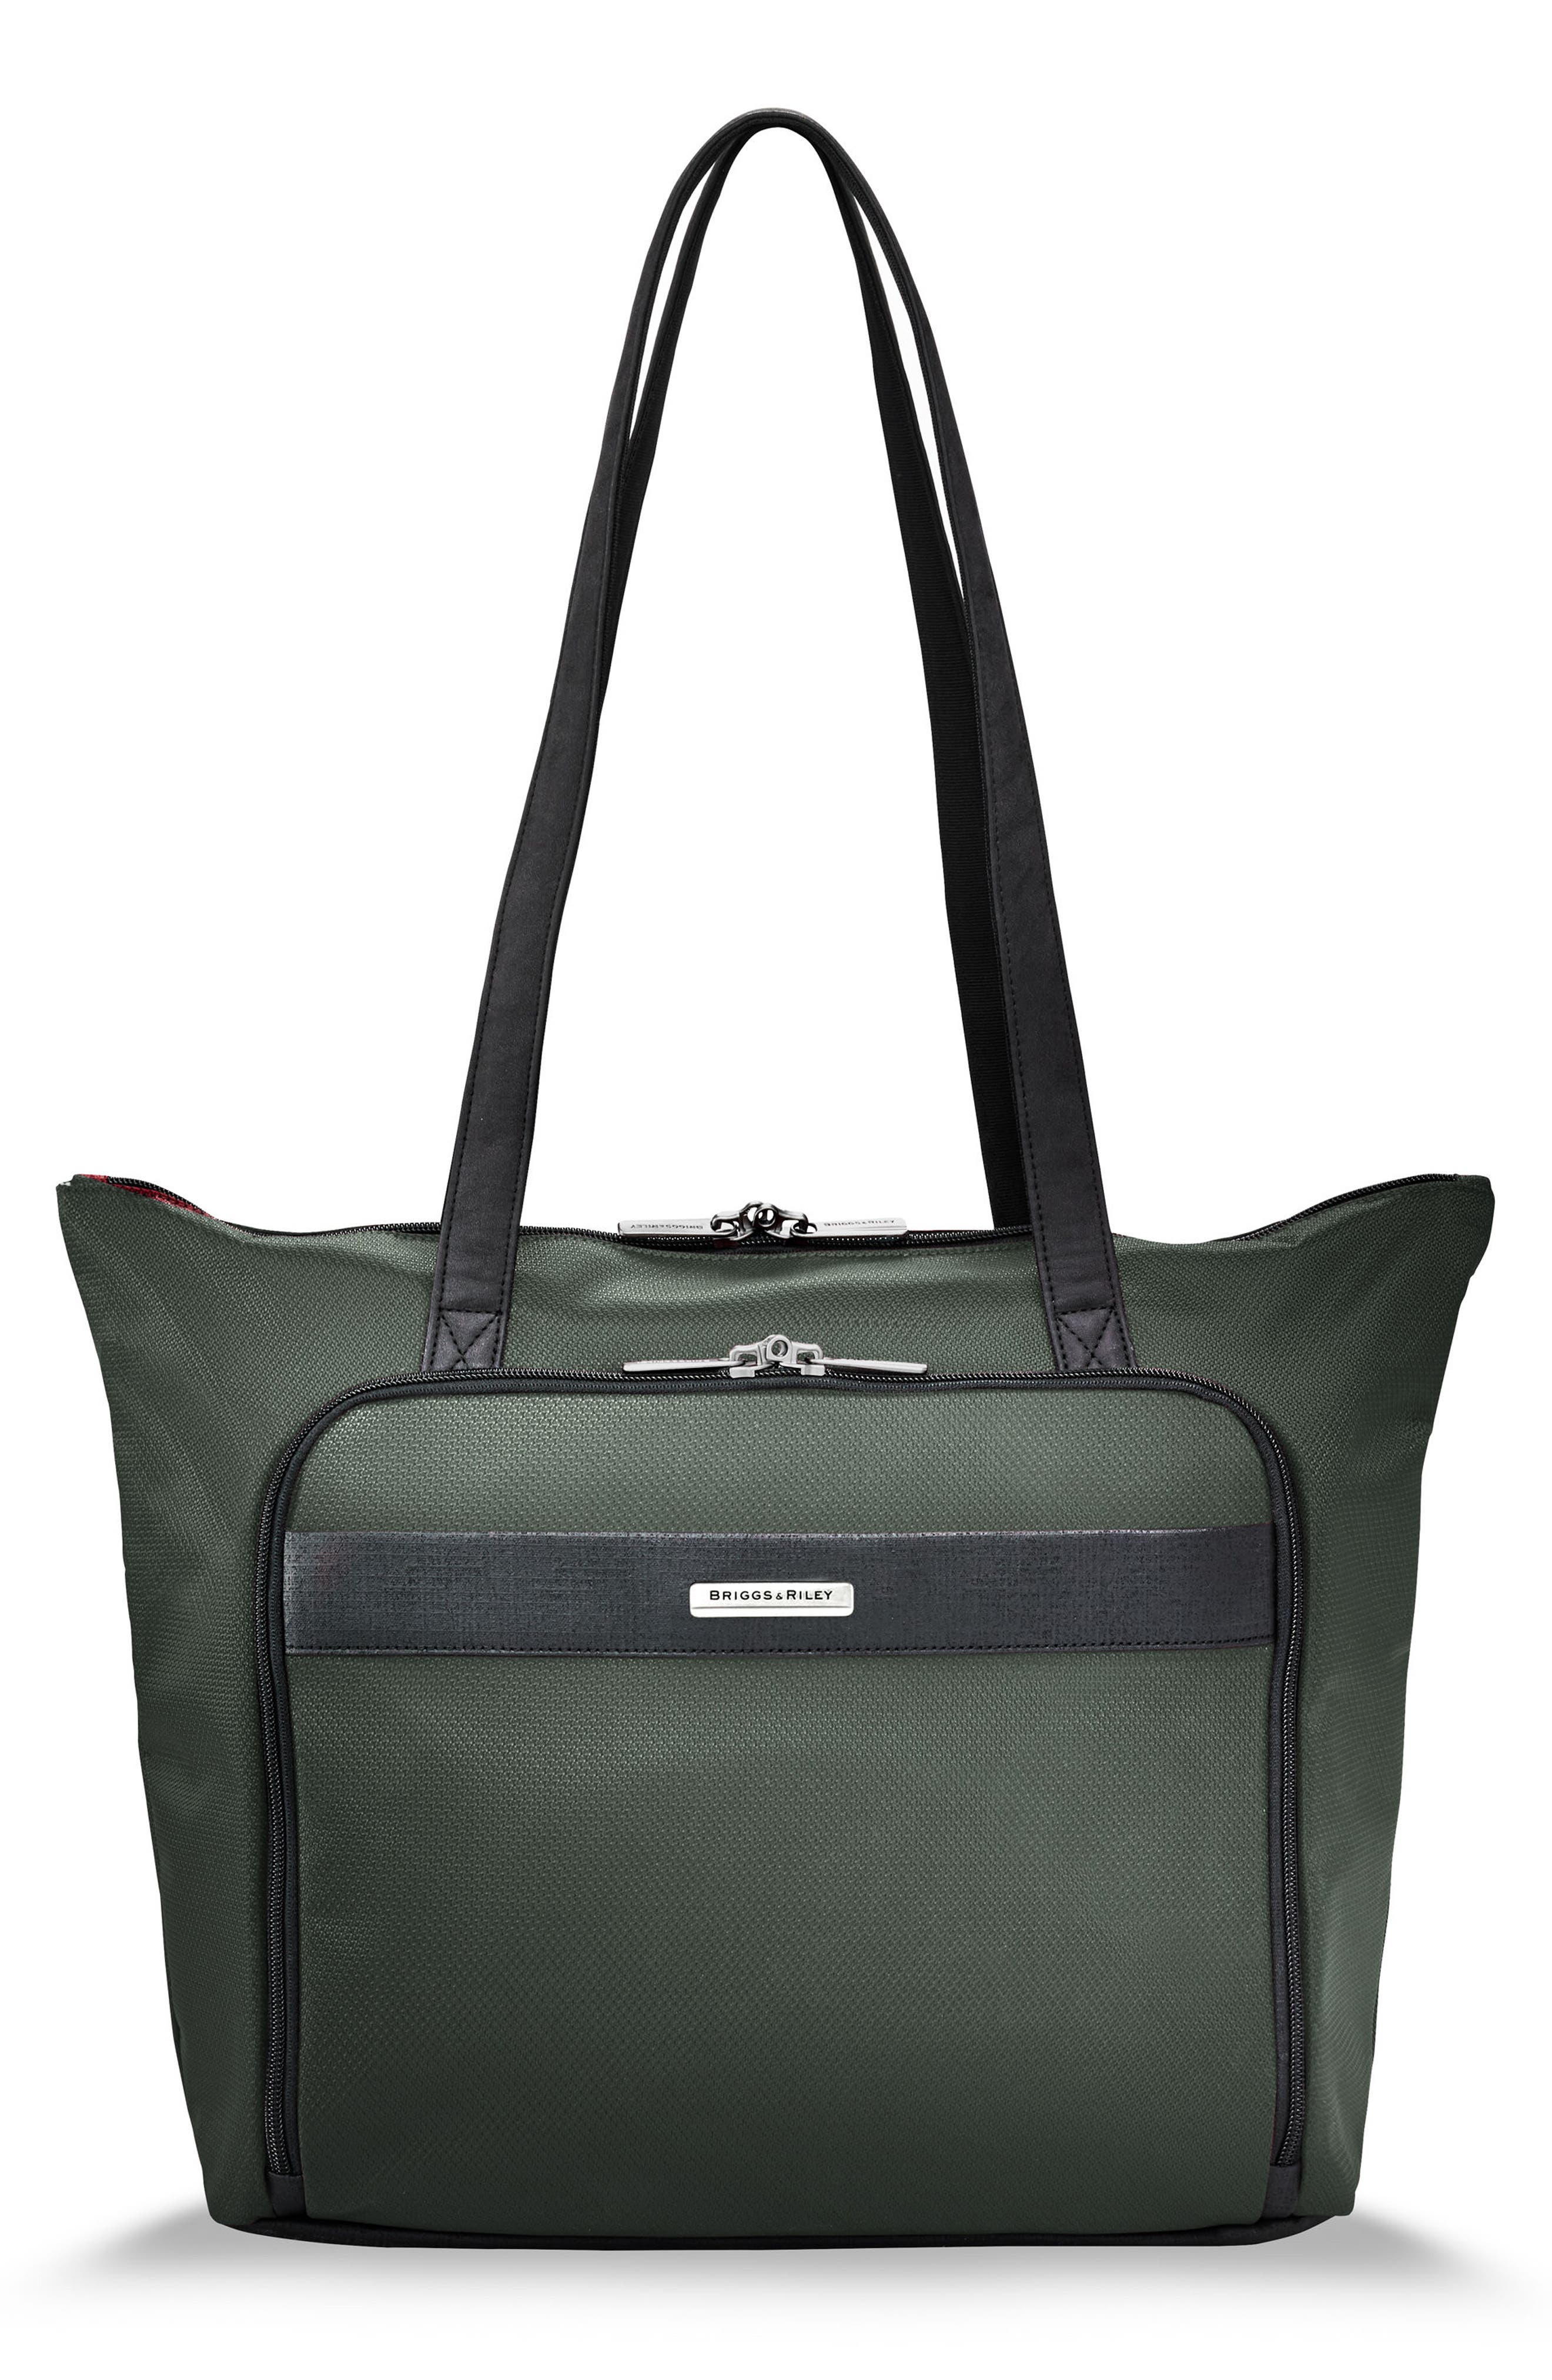 Main Image - Briggs & Riley Transcend 400 Tote Bag